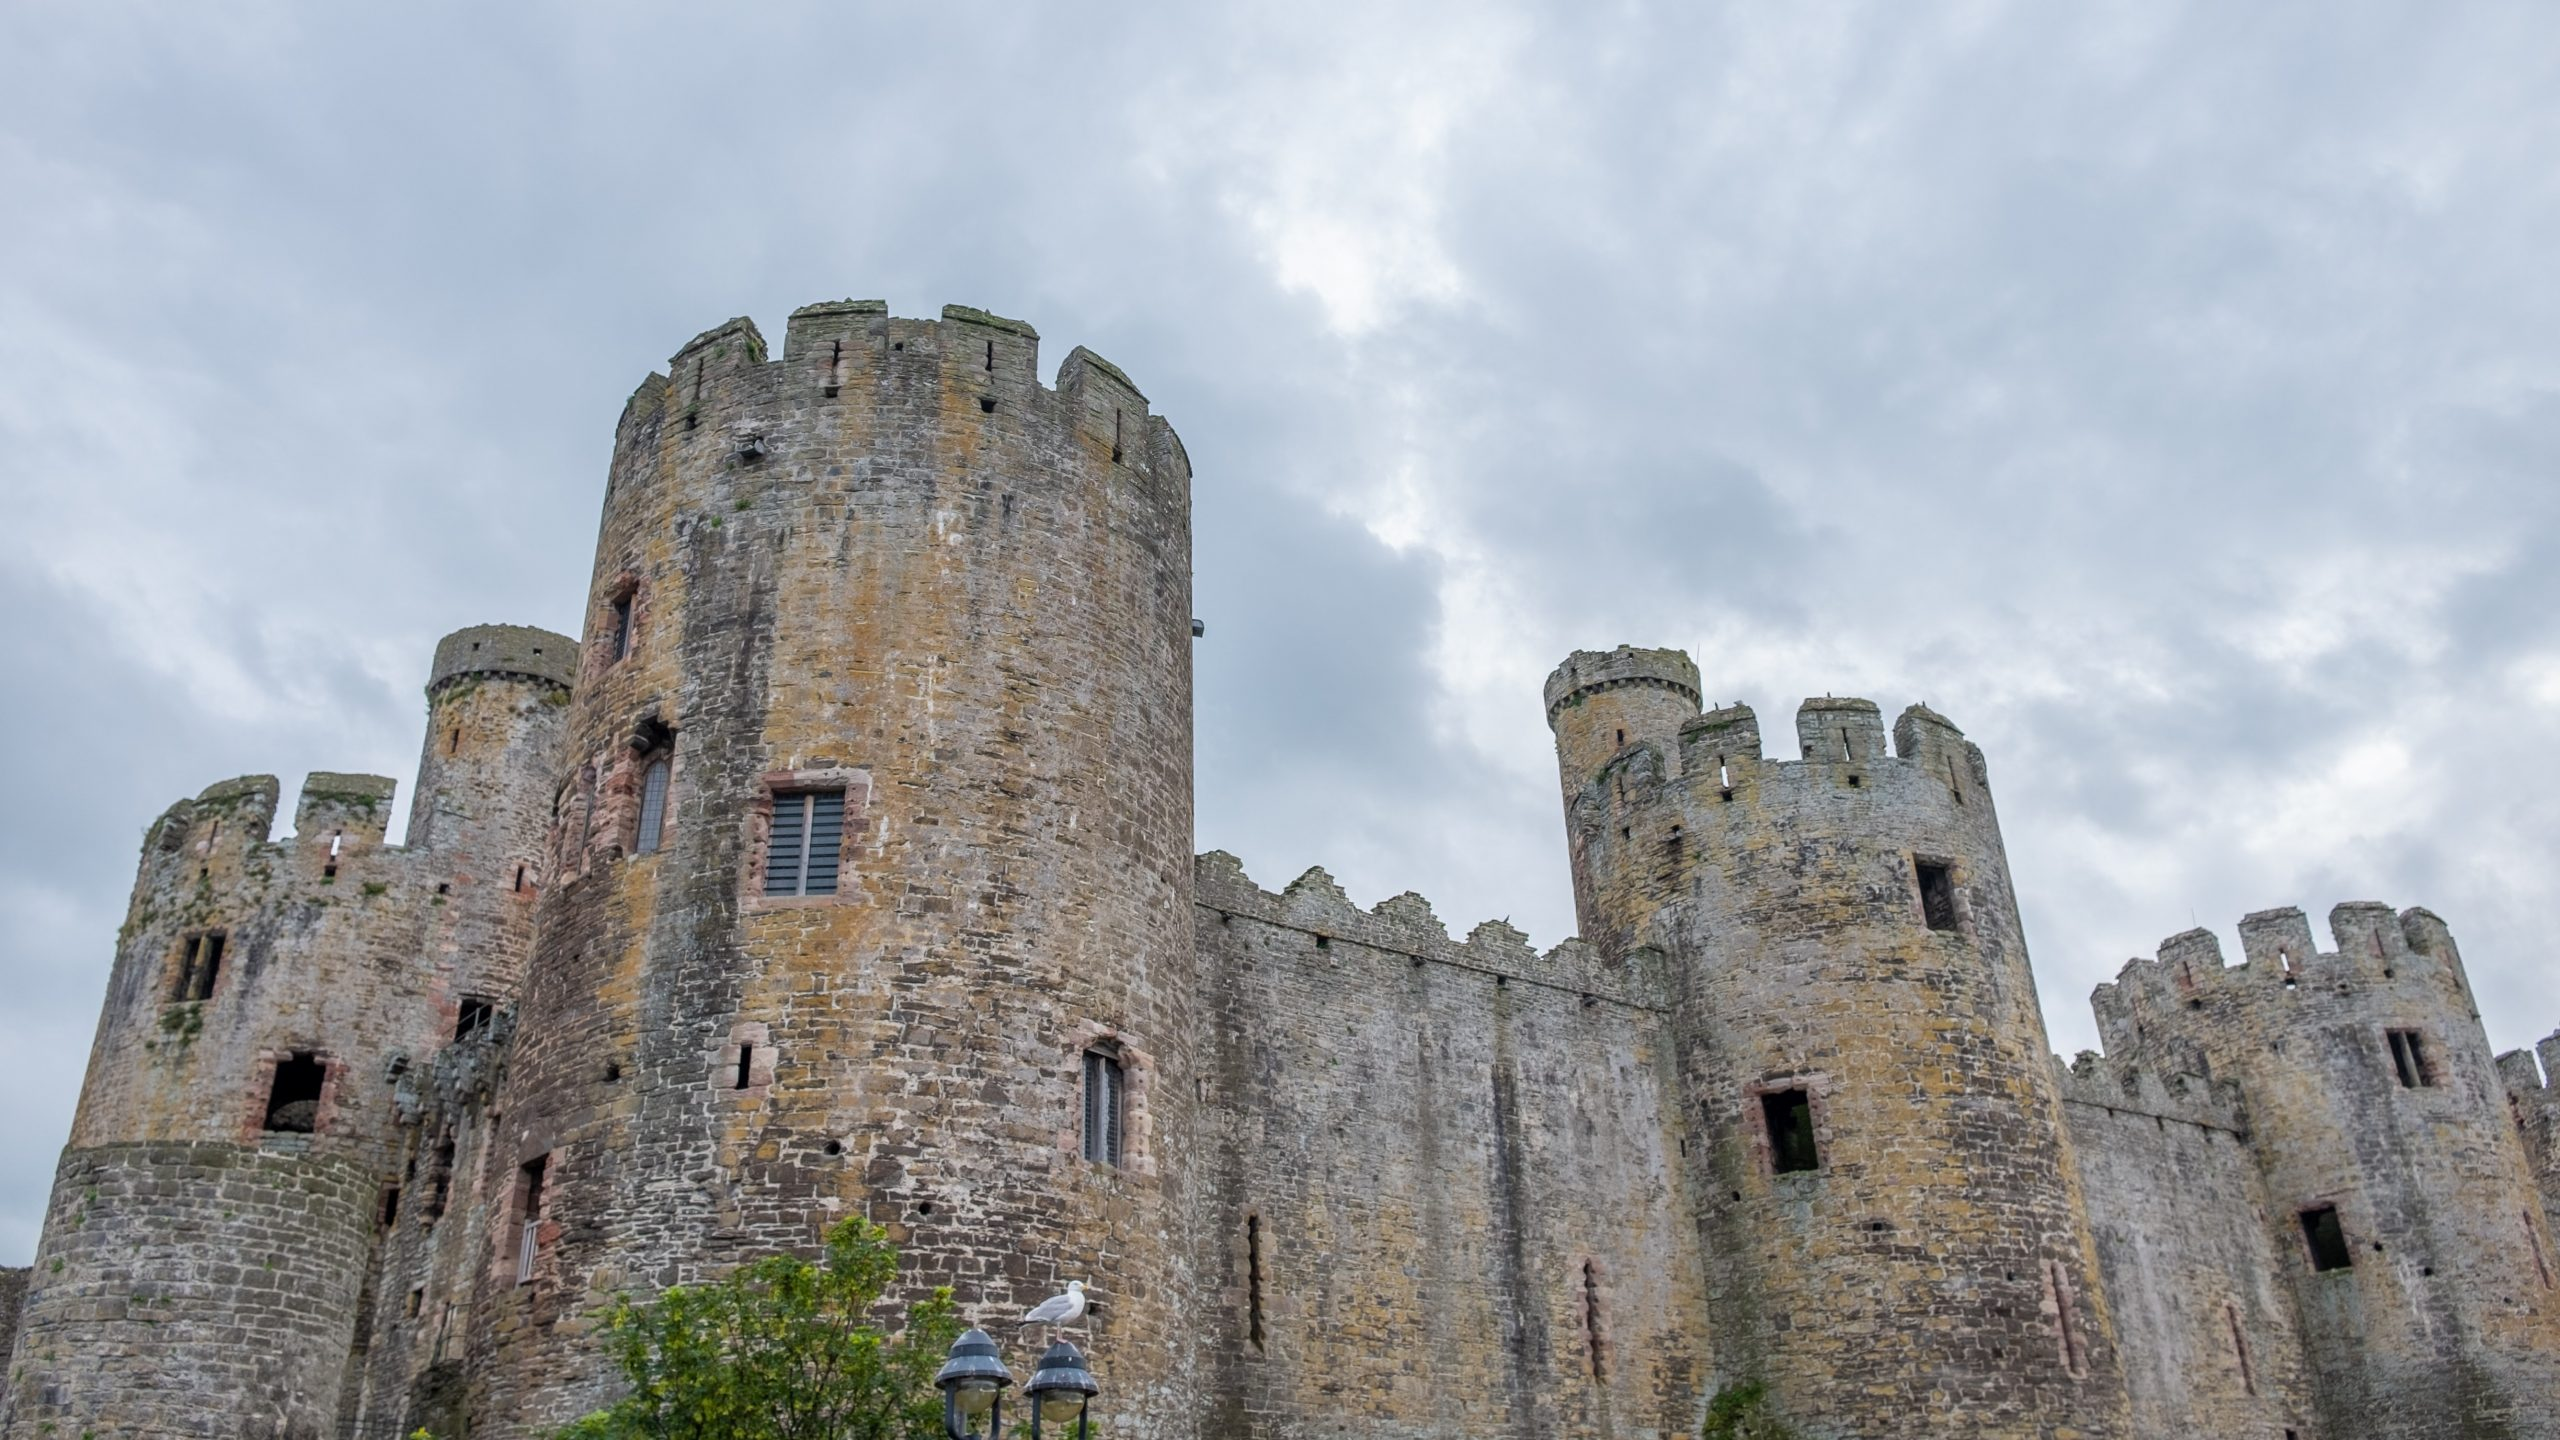 Activities to Do in Conwy